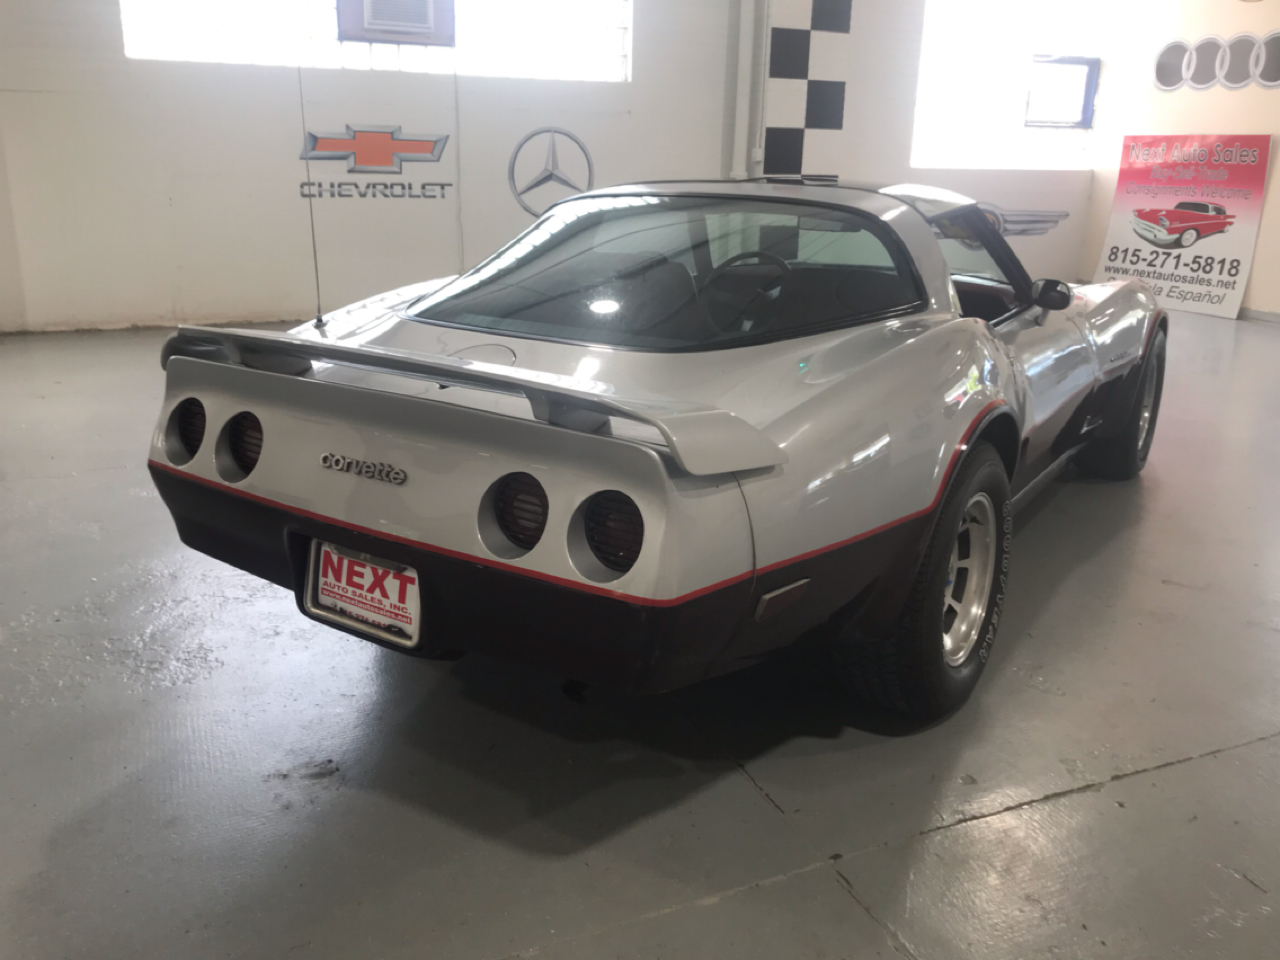 Chevrolet Corvette 2dr Coupe 1982